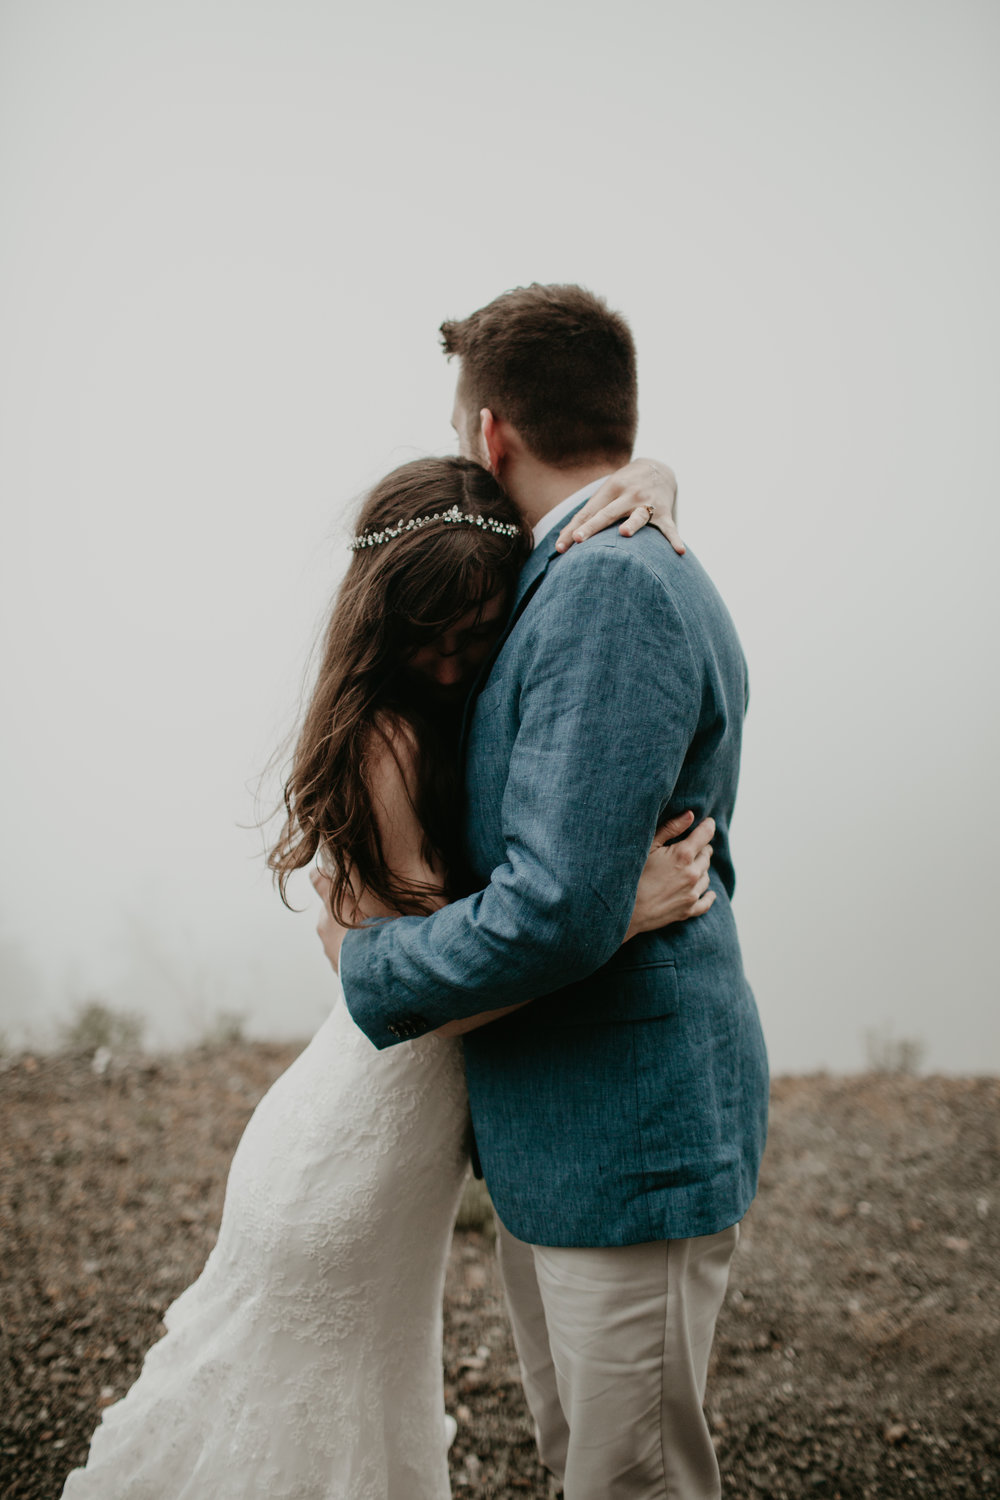 PNW-elopement-wedding-engagement-olympic national park-port angeles-hurricane ridge-lake crescent-kayla dawn photography- photographer-photography-kayladawnphoto-223.jpg